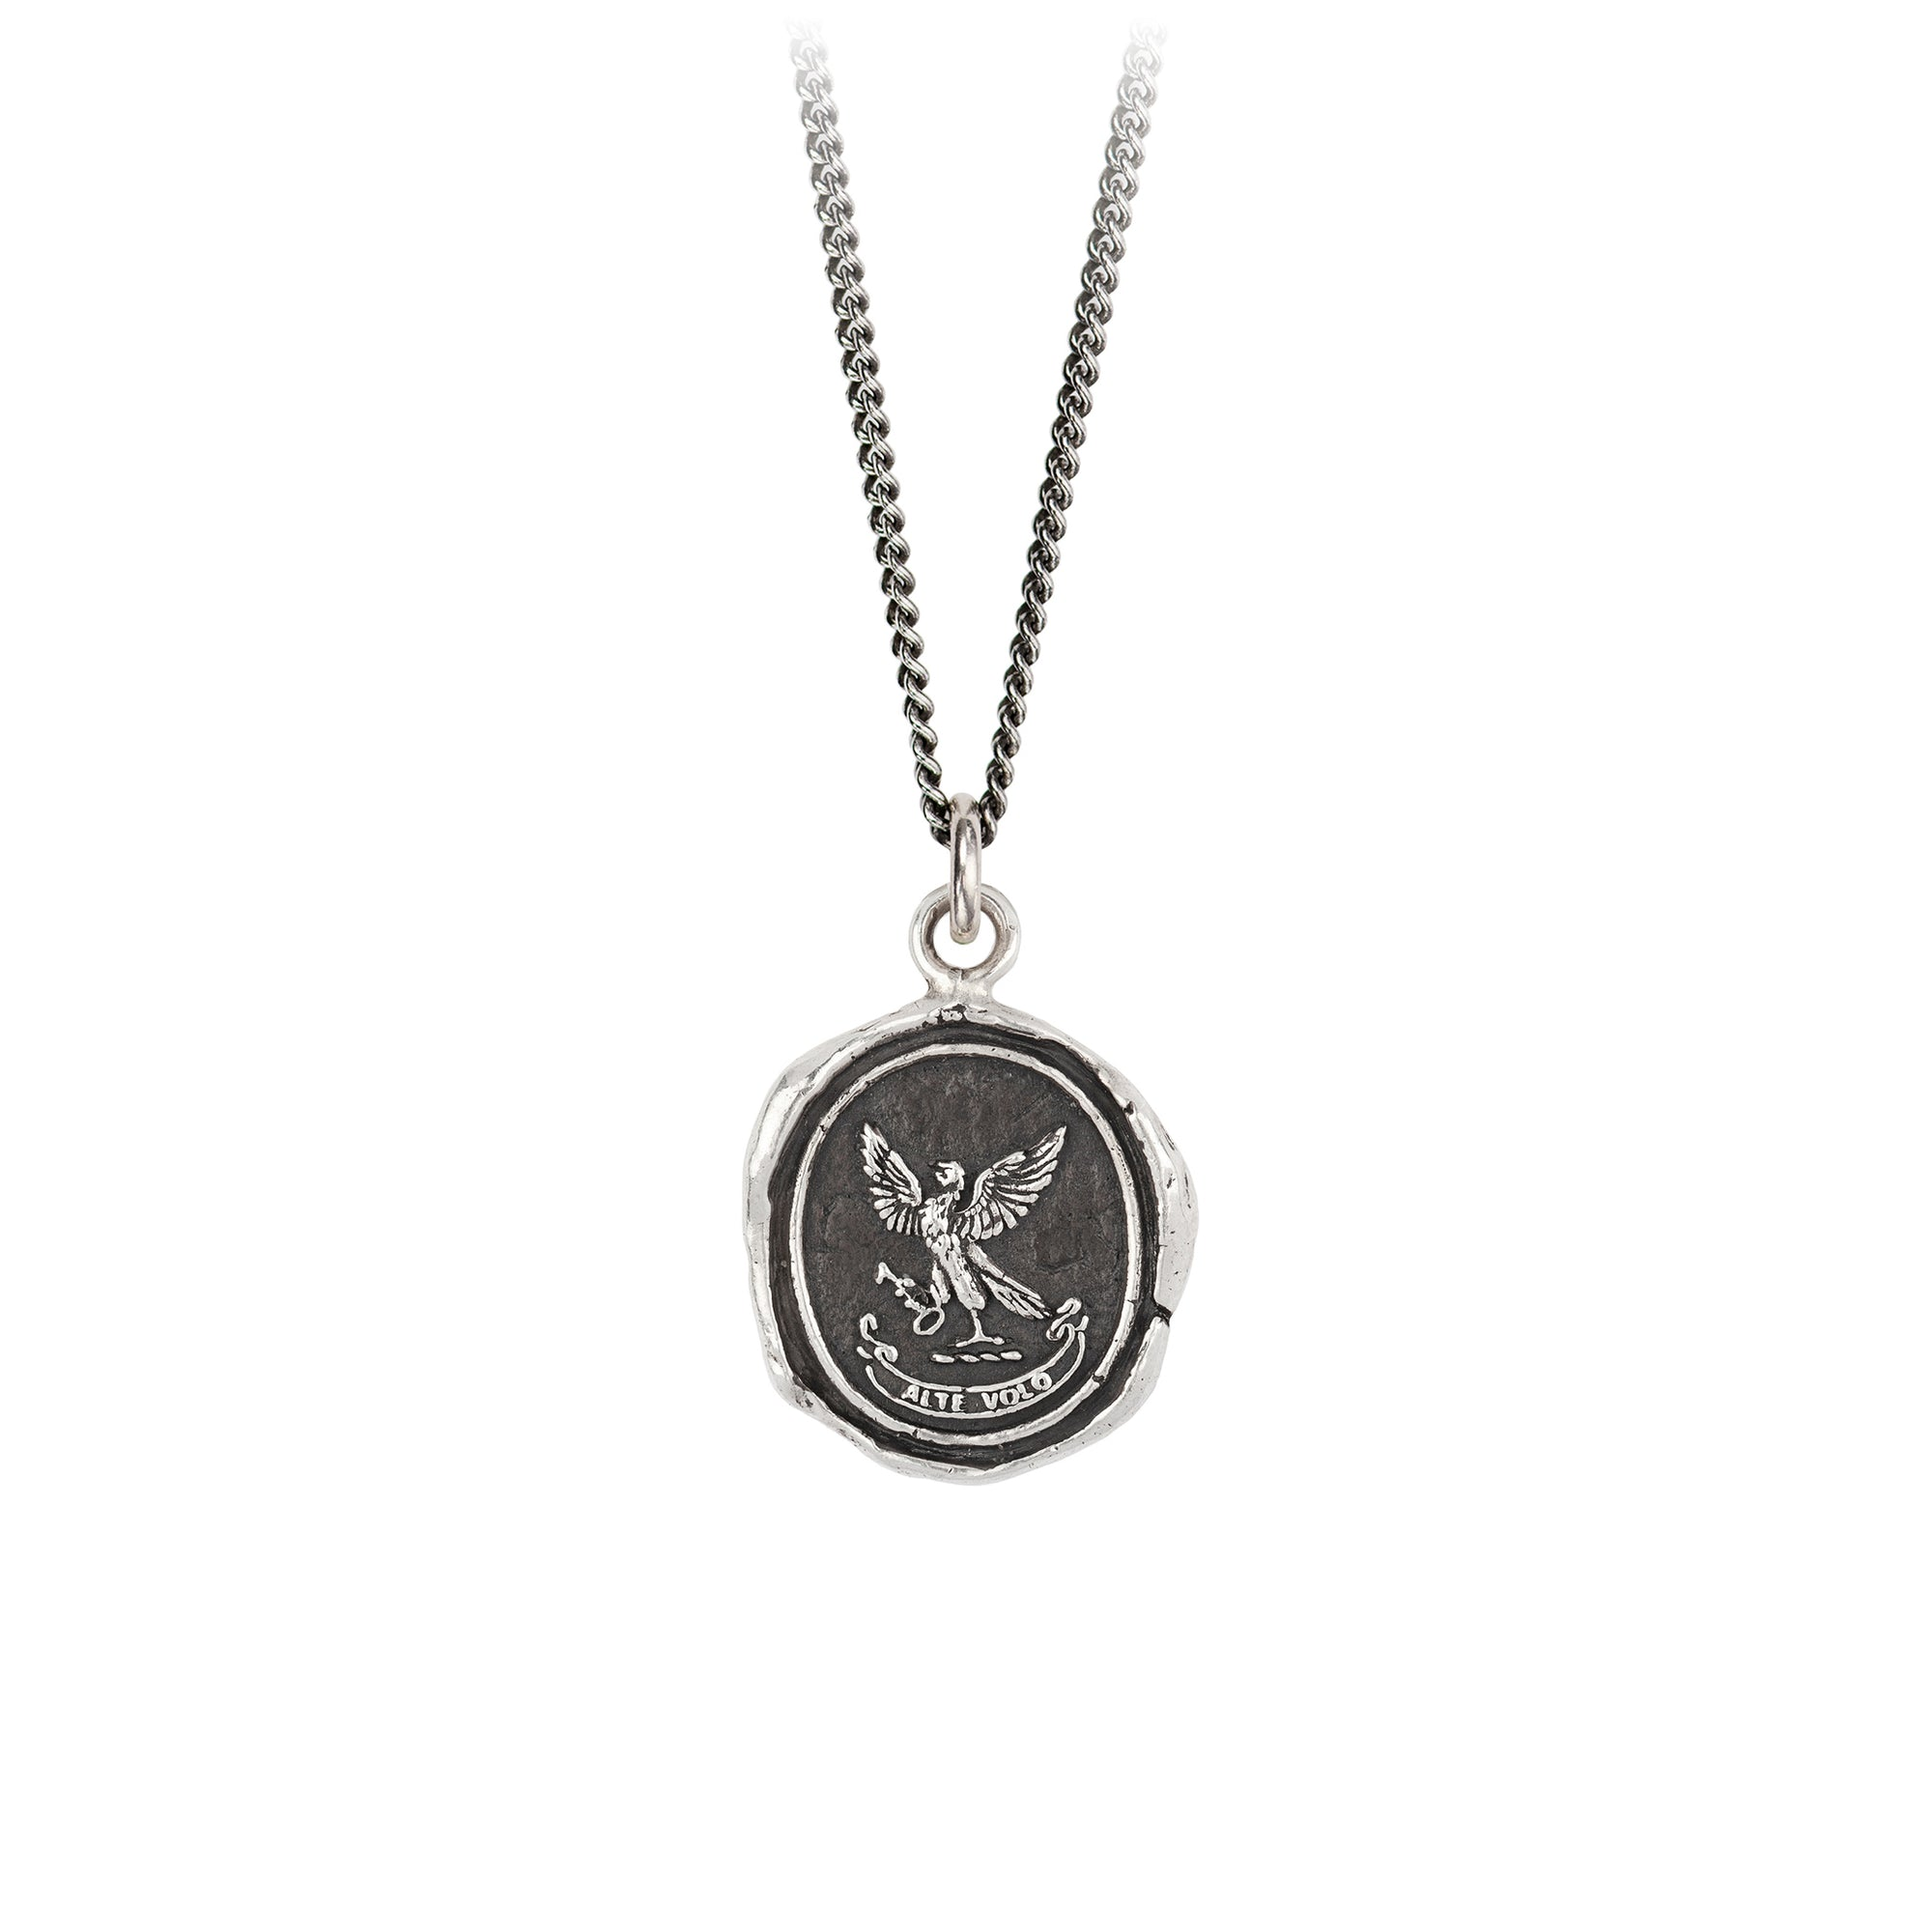 Pyrrha Limitless Talisman Necklace Fine Curb Chain Silver